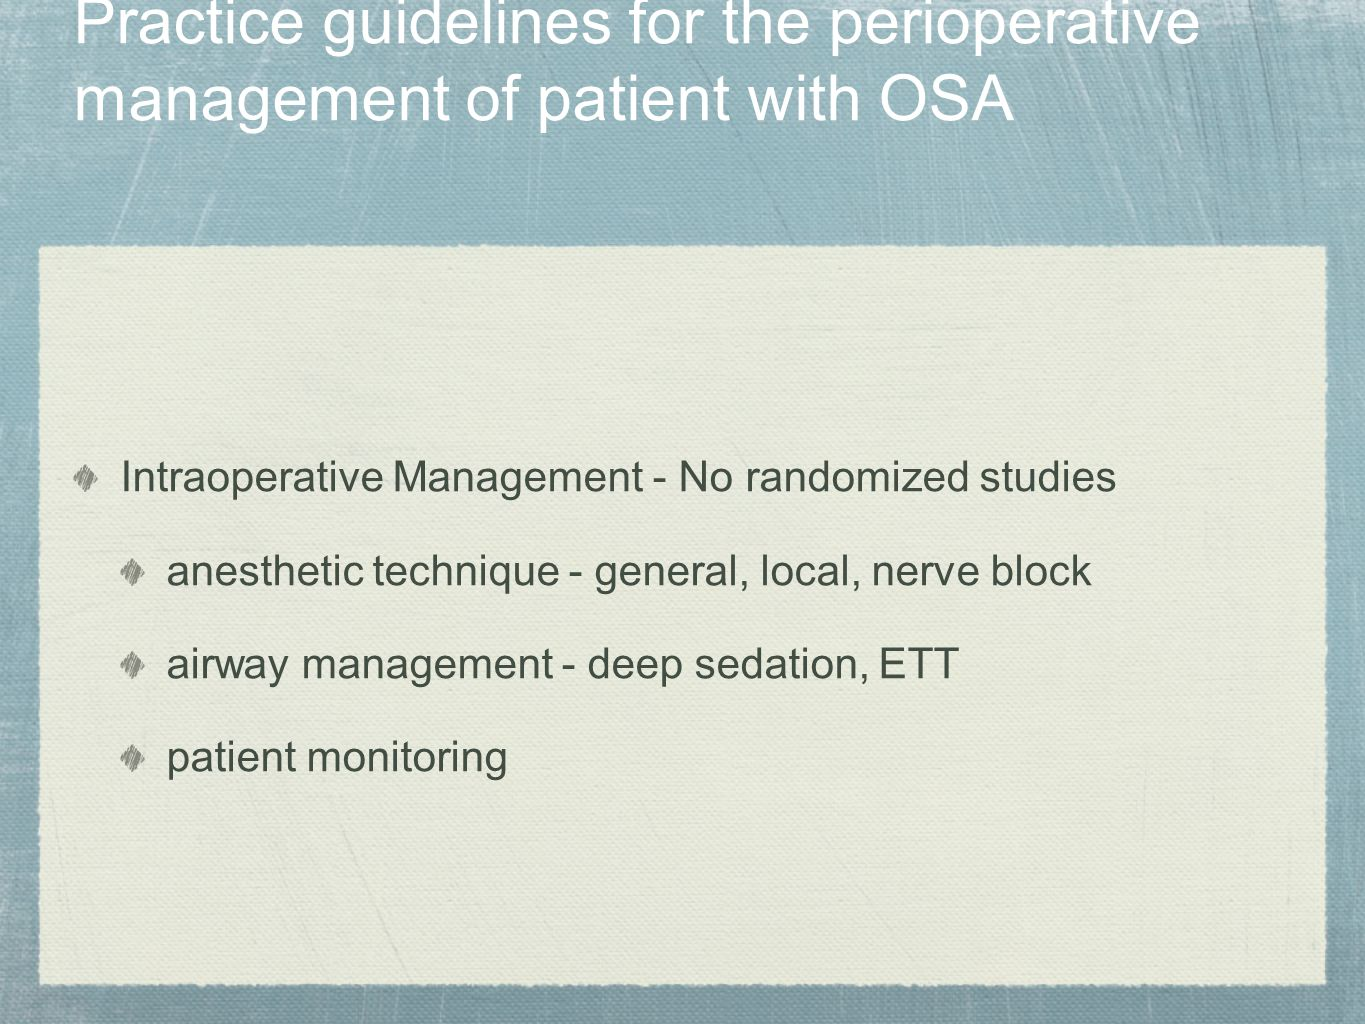 Practice guidelines for the perioperative management of patient with OSA Intraoperative Management - No randomized studies anesthetic technique - gene